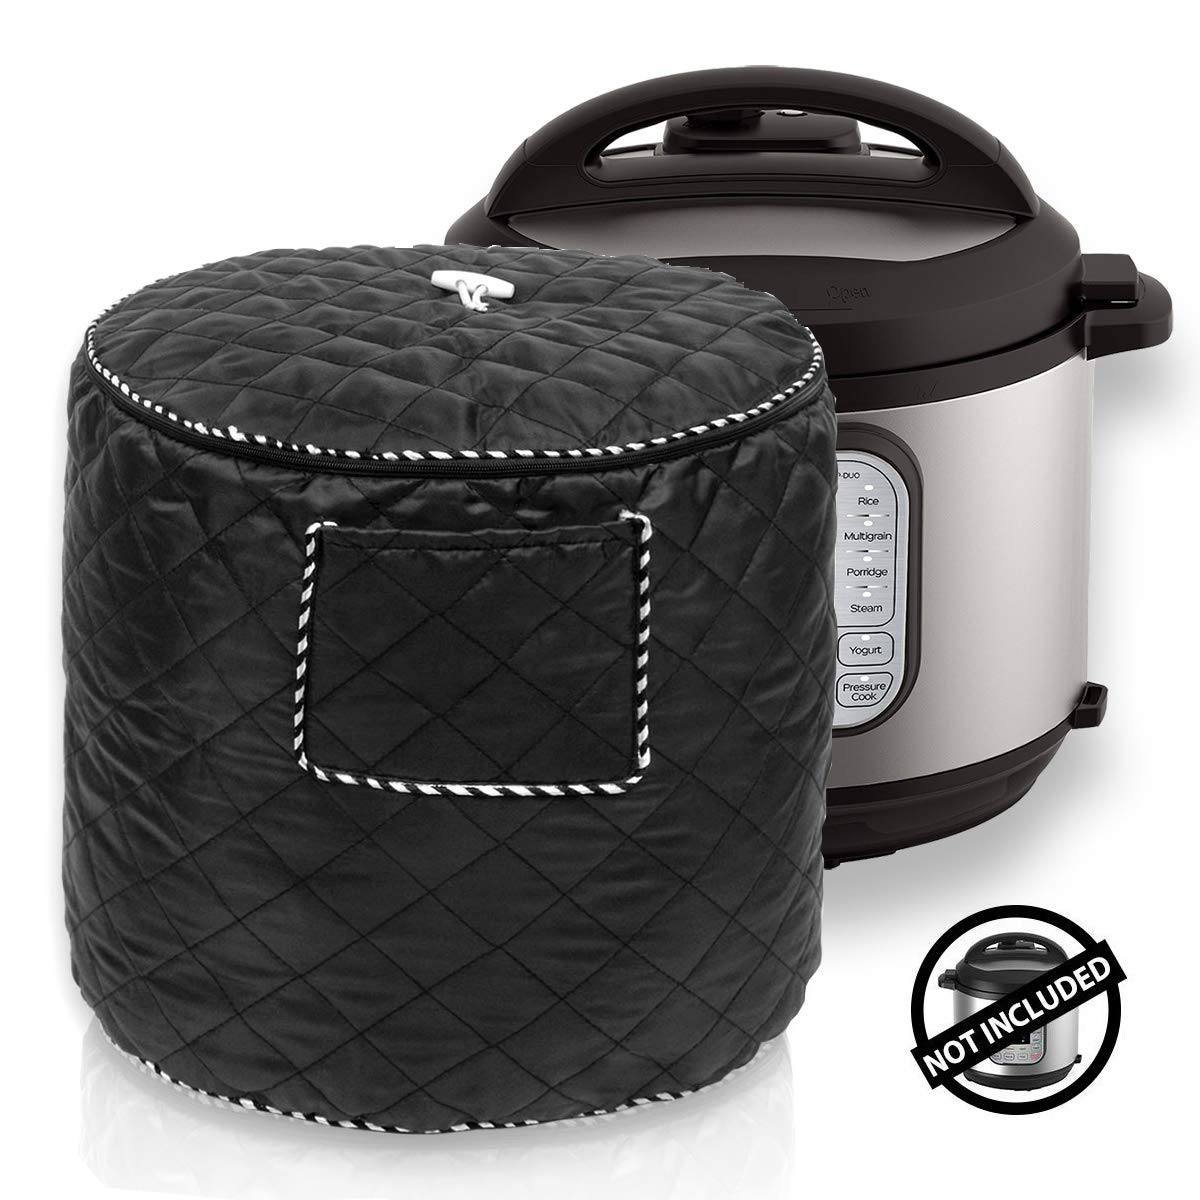 Kitchen Appliance Cover Bag for 6 Quart Instant Pot and Electric Pressure Cooker, Black